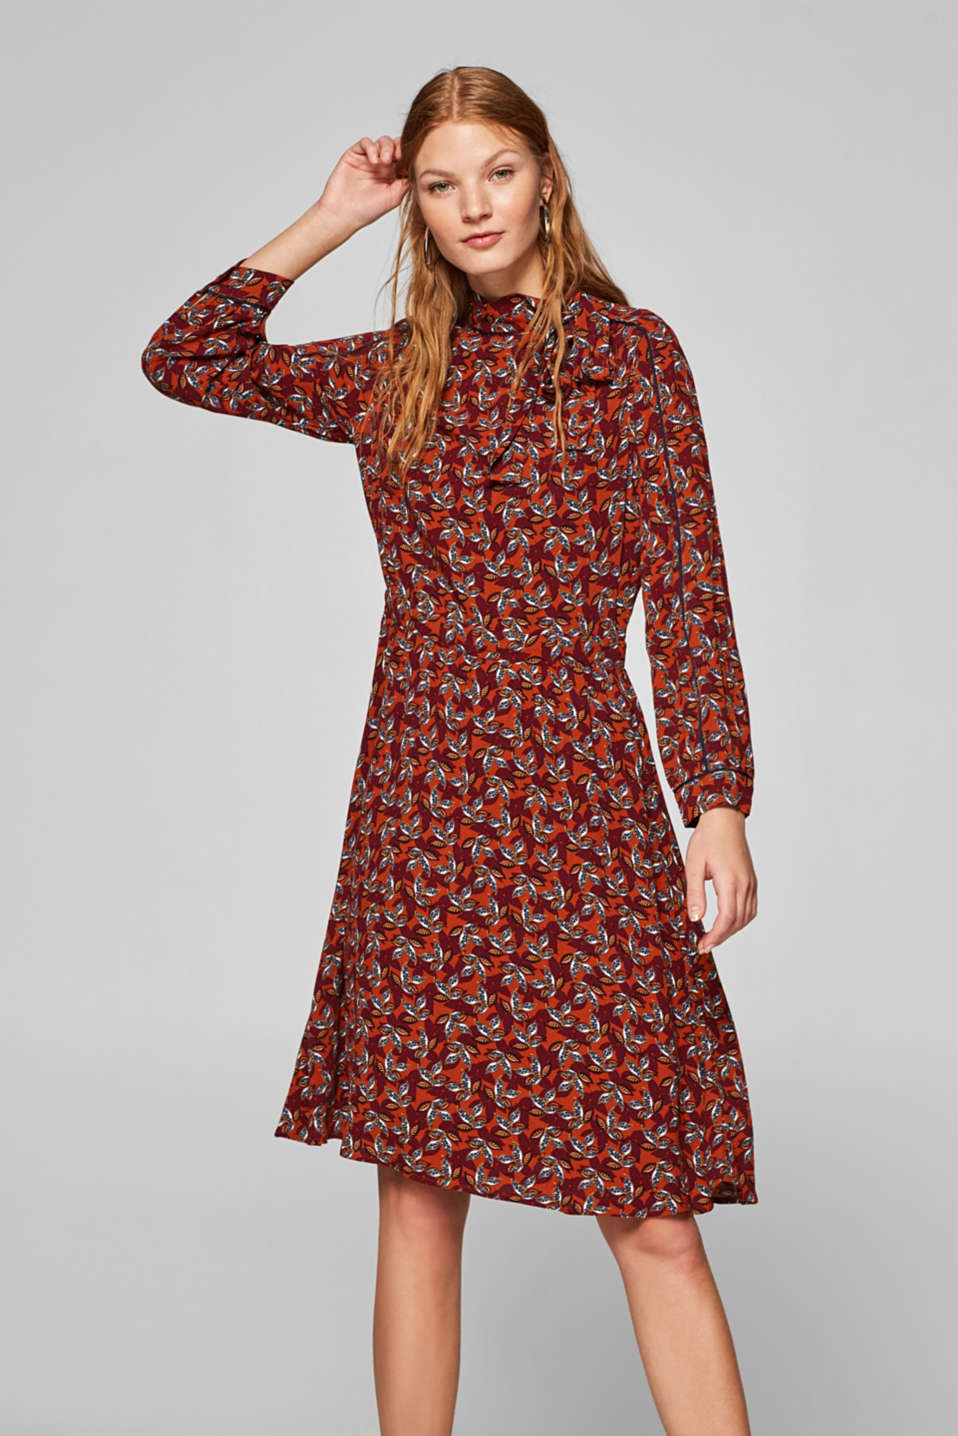 Esprit - Printed midi dress with a band collar and a bow